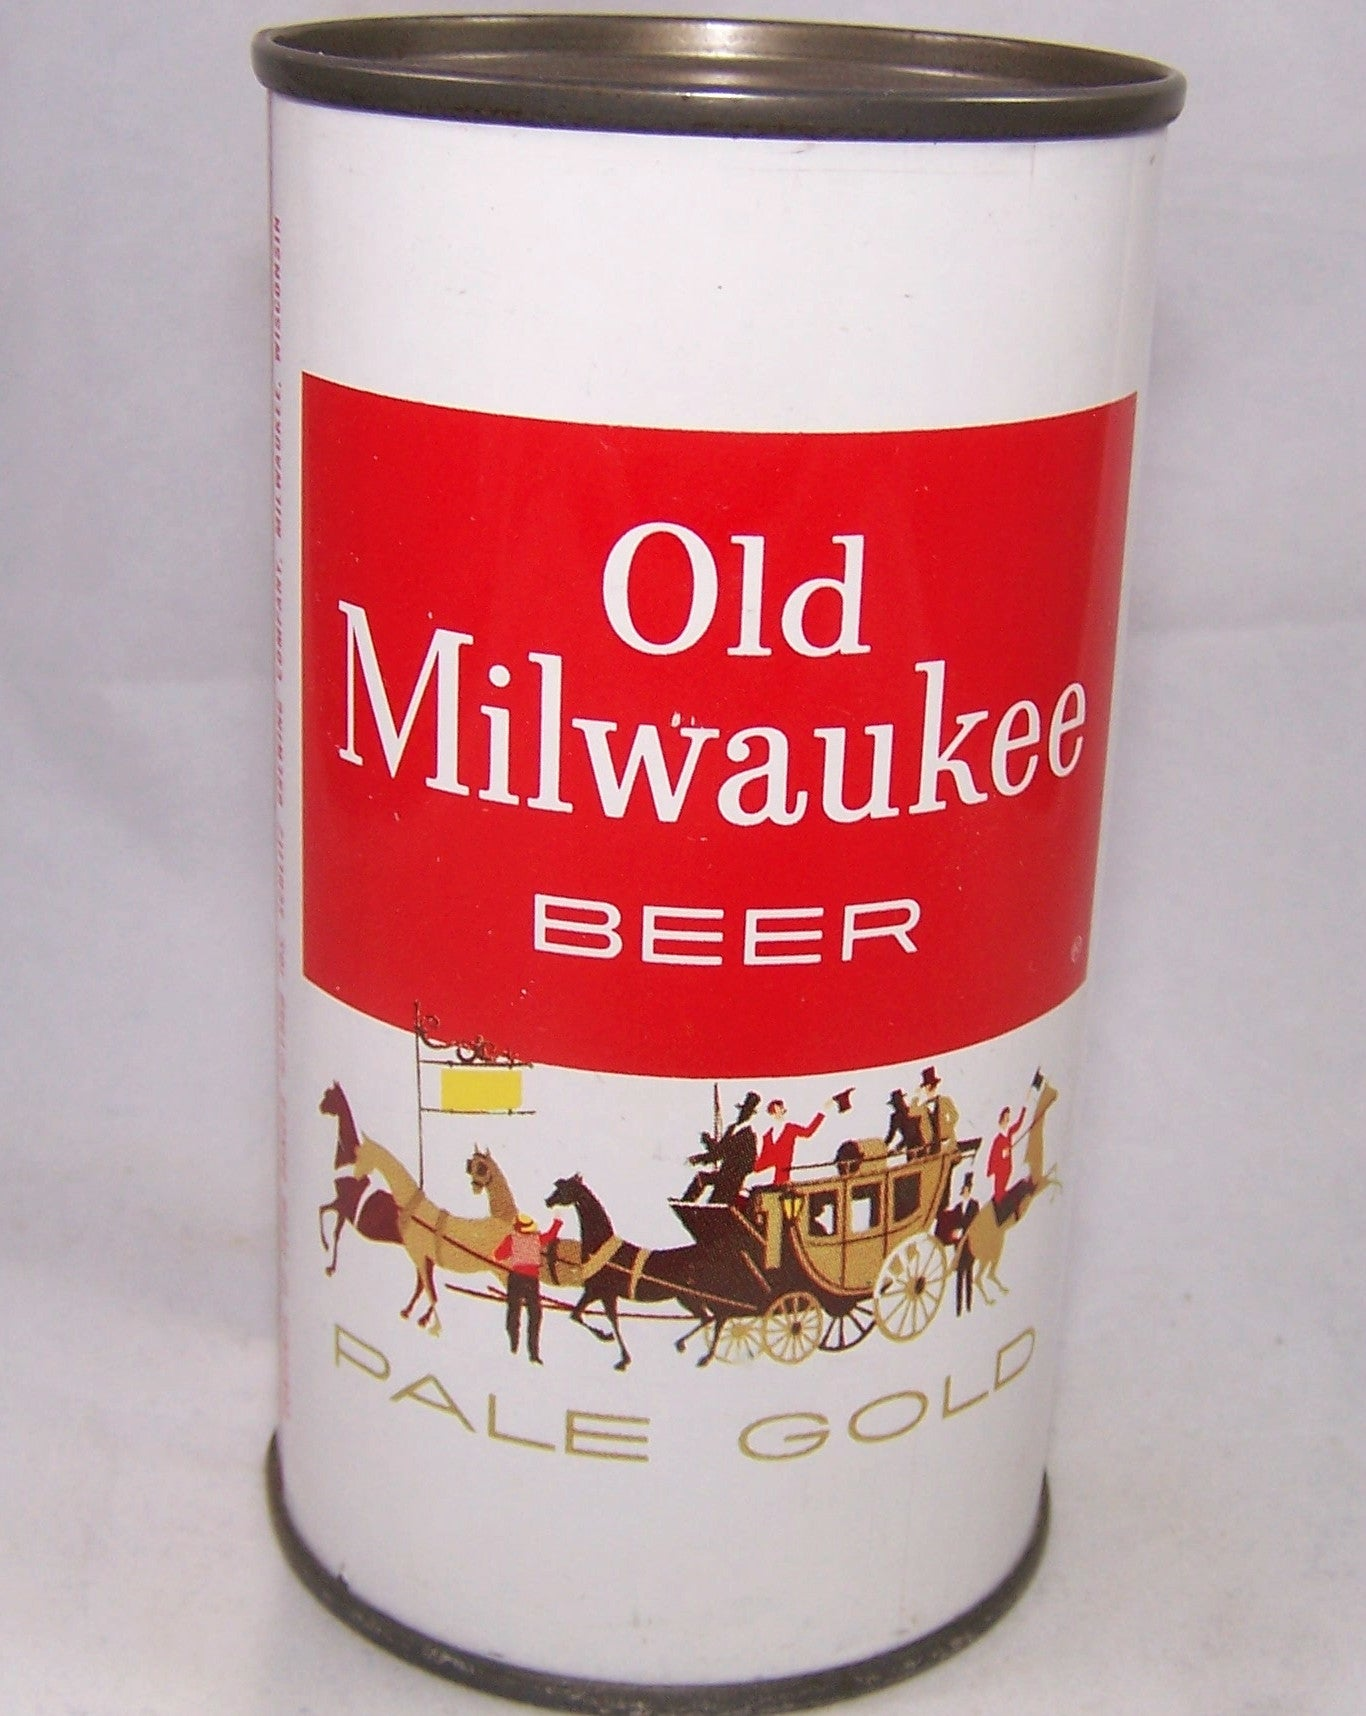 Old Milwaukee Pale Gold Beer, USBC 107-29, Grade A1+Blue